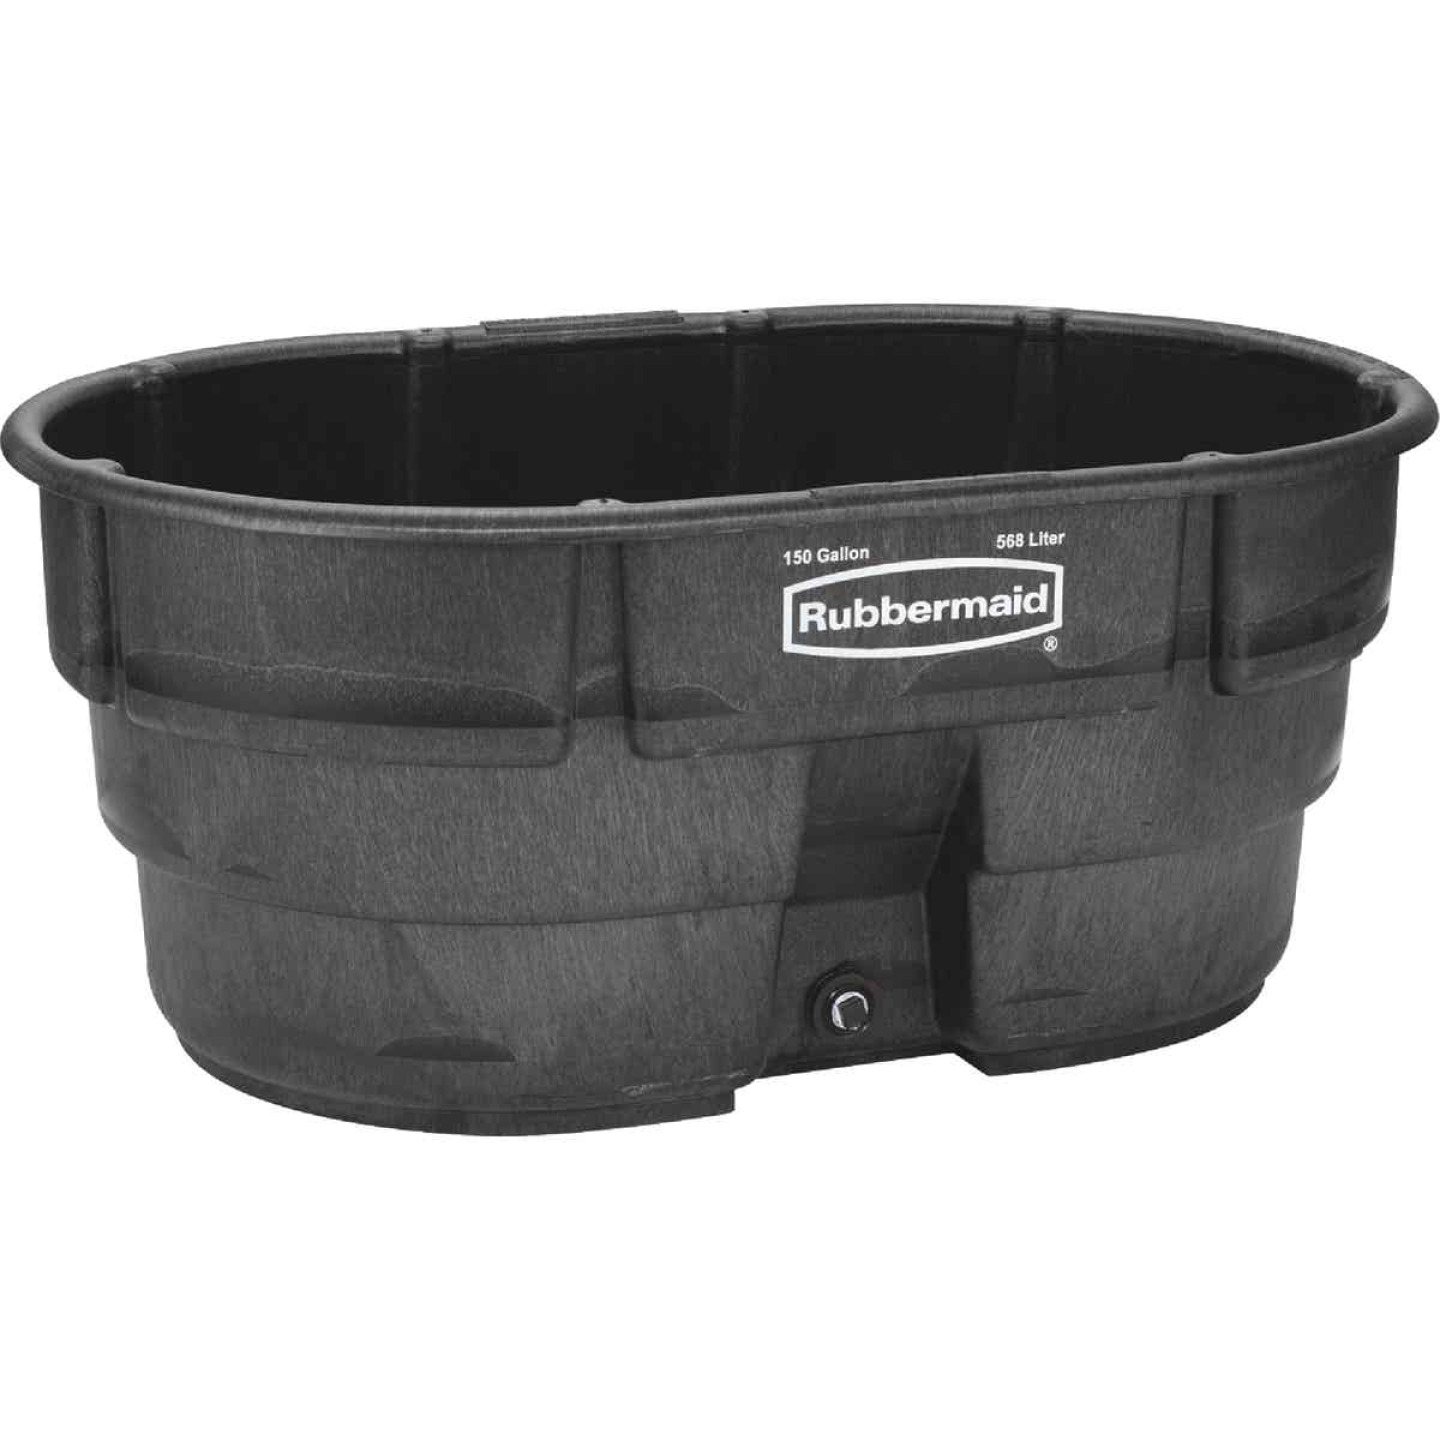 Rubbermaid 150 Gal. Structural Foam Stock Tank Image 1